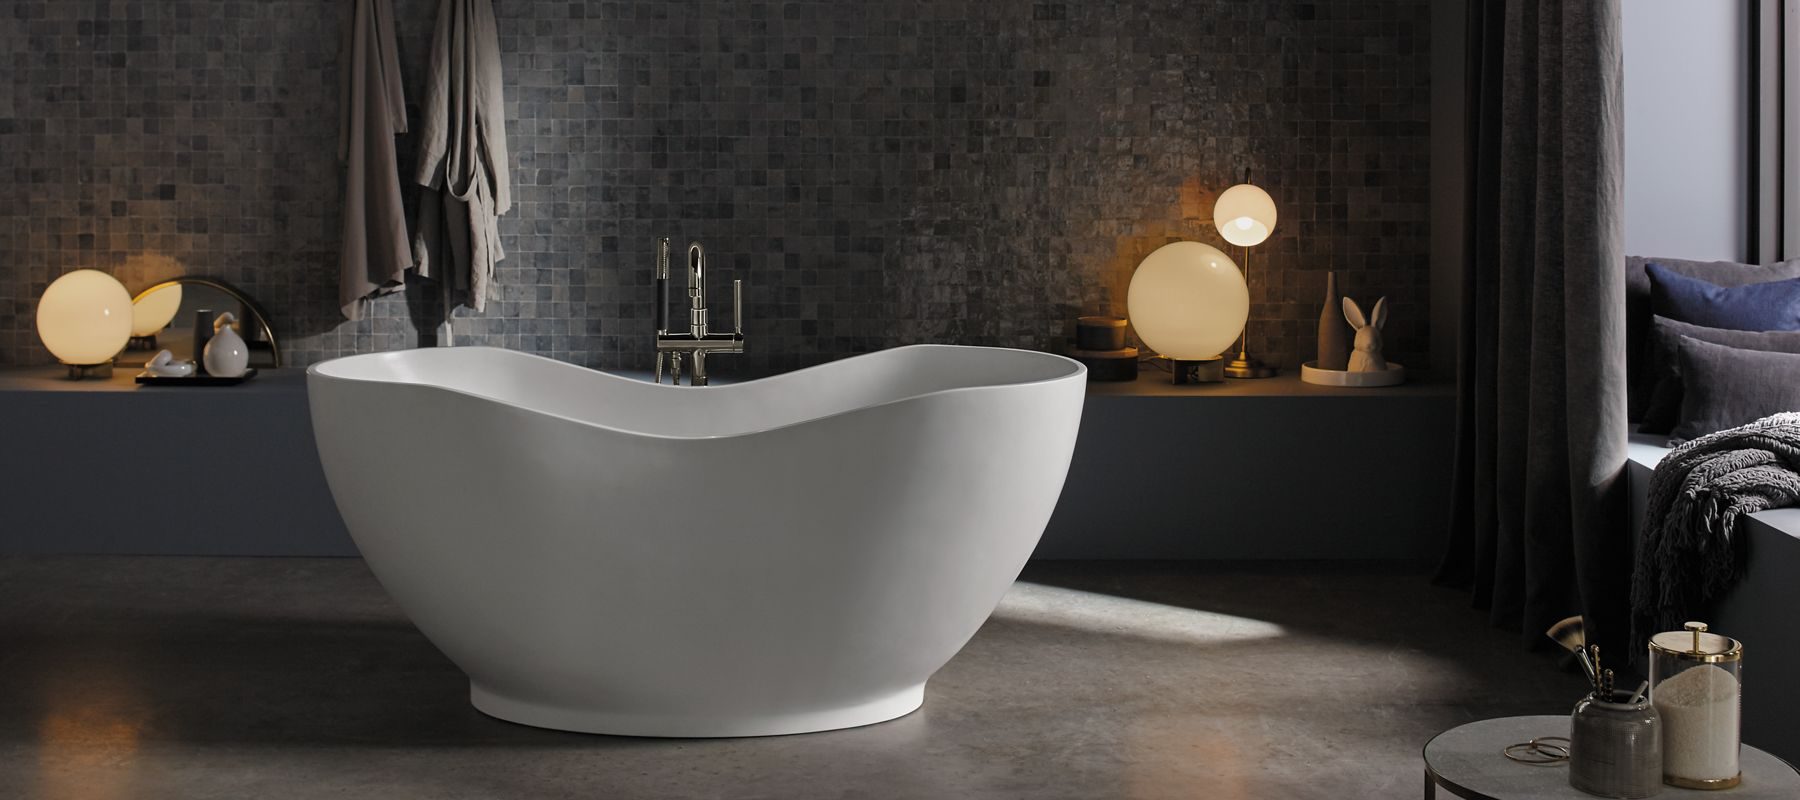 Find your perfect bath